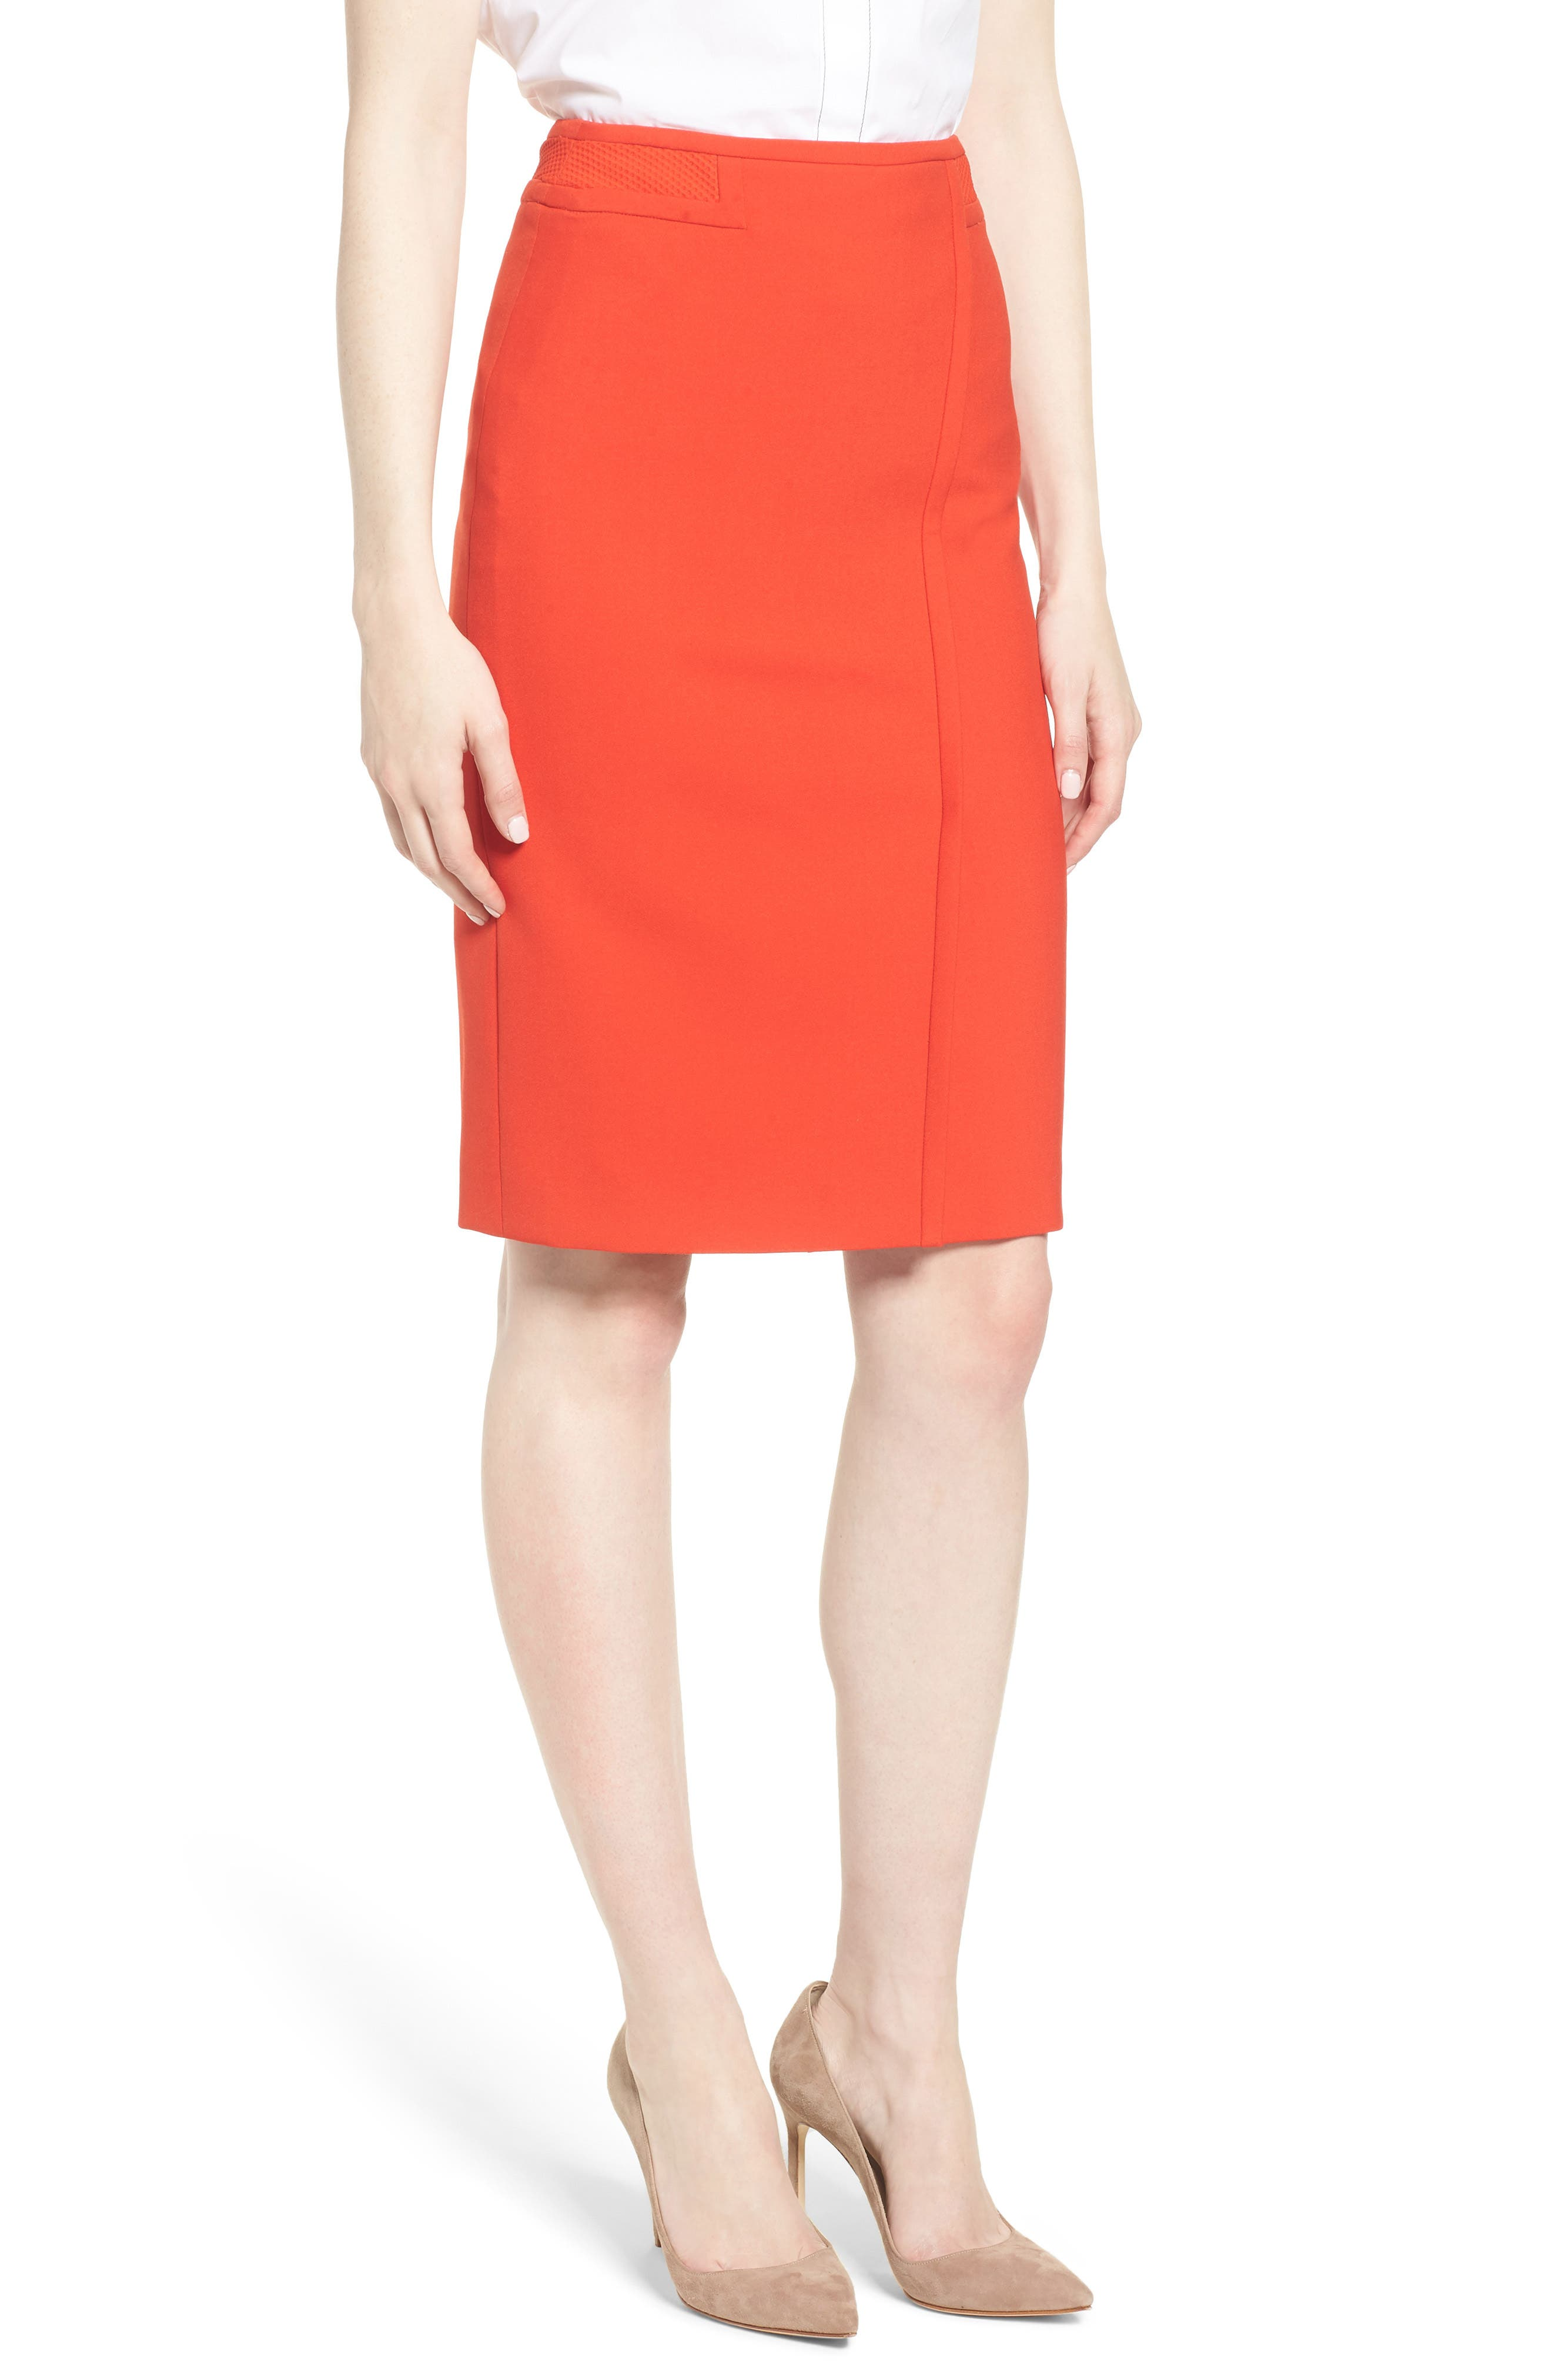 Vadama Ponte Pencil Skirt,                             Main thumbnail 1, color,                             Sunset Orange